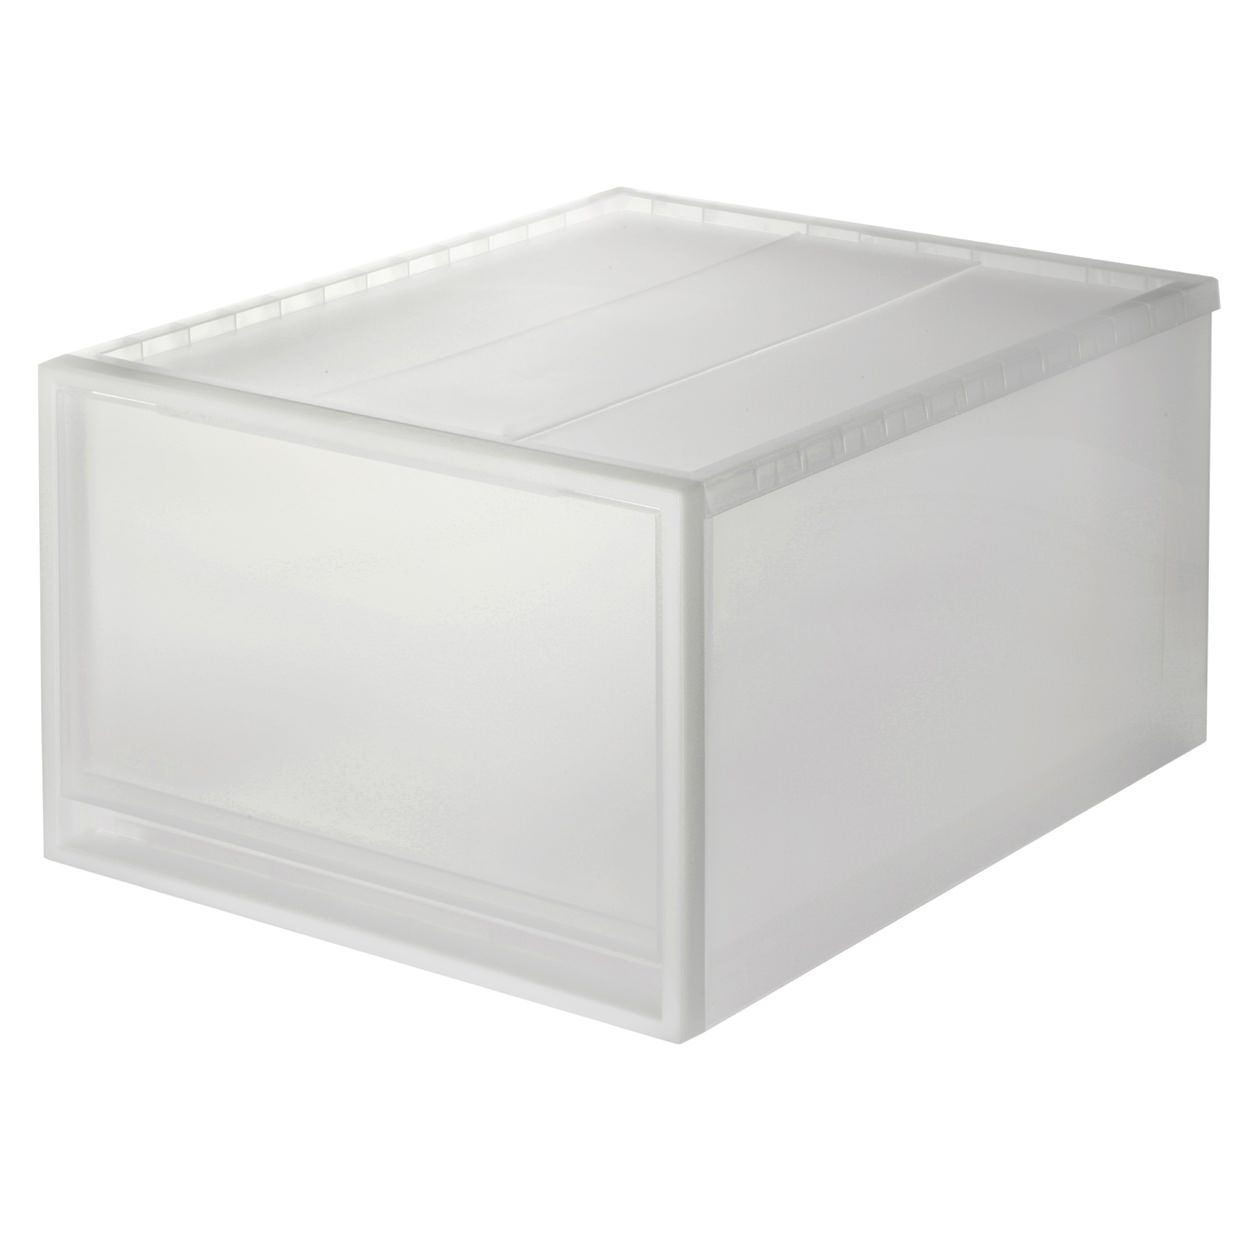 PP Storage Box - 44x55 L